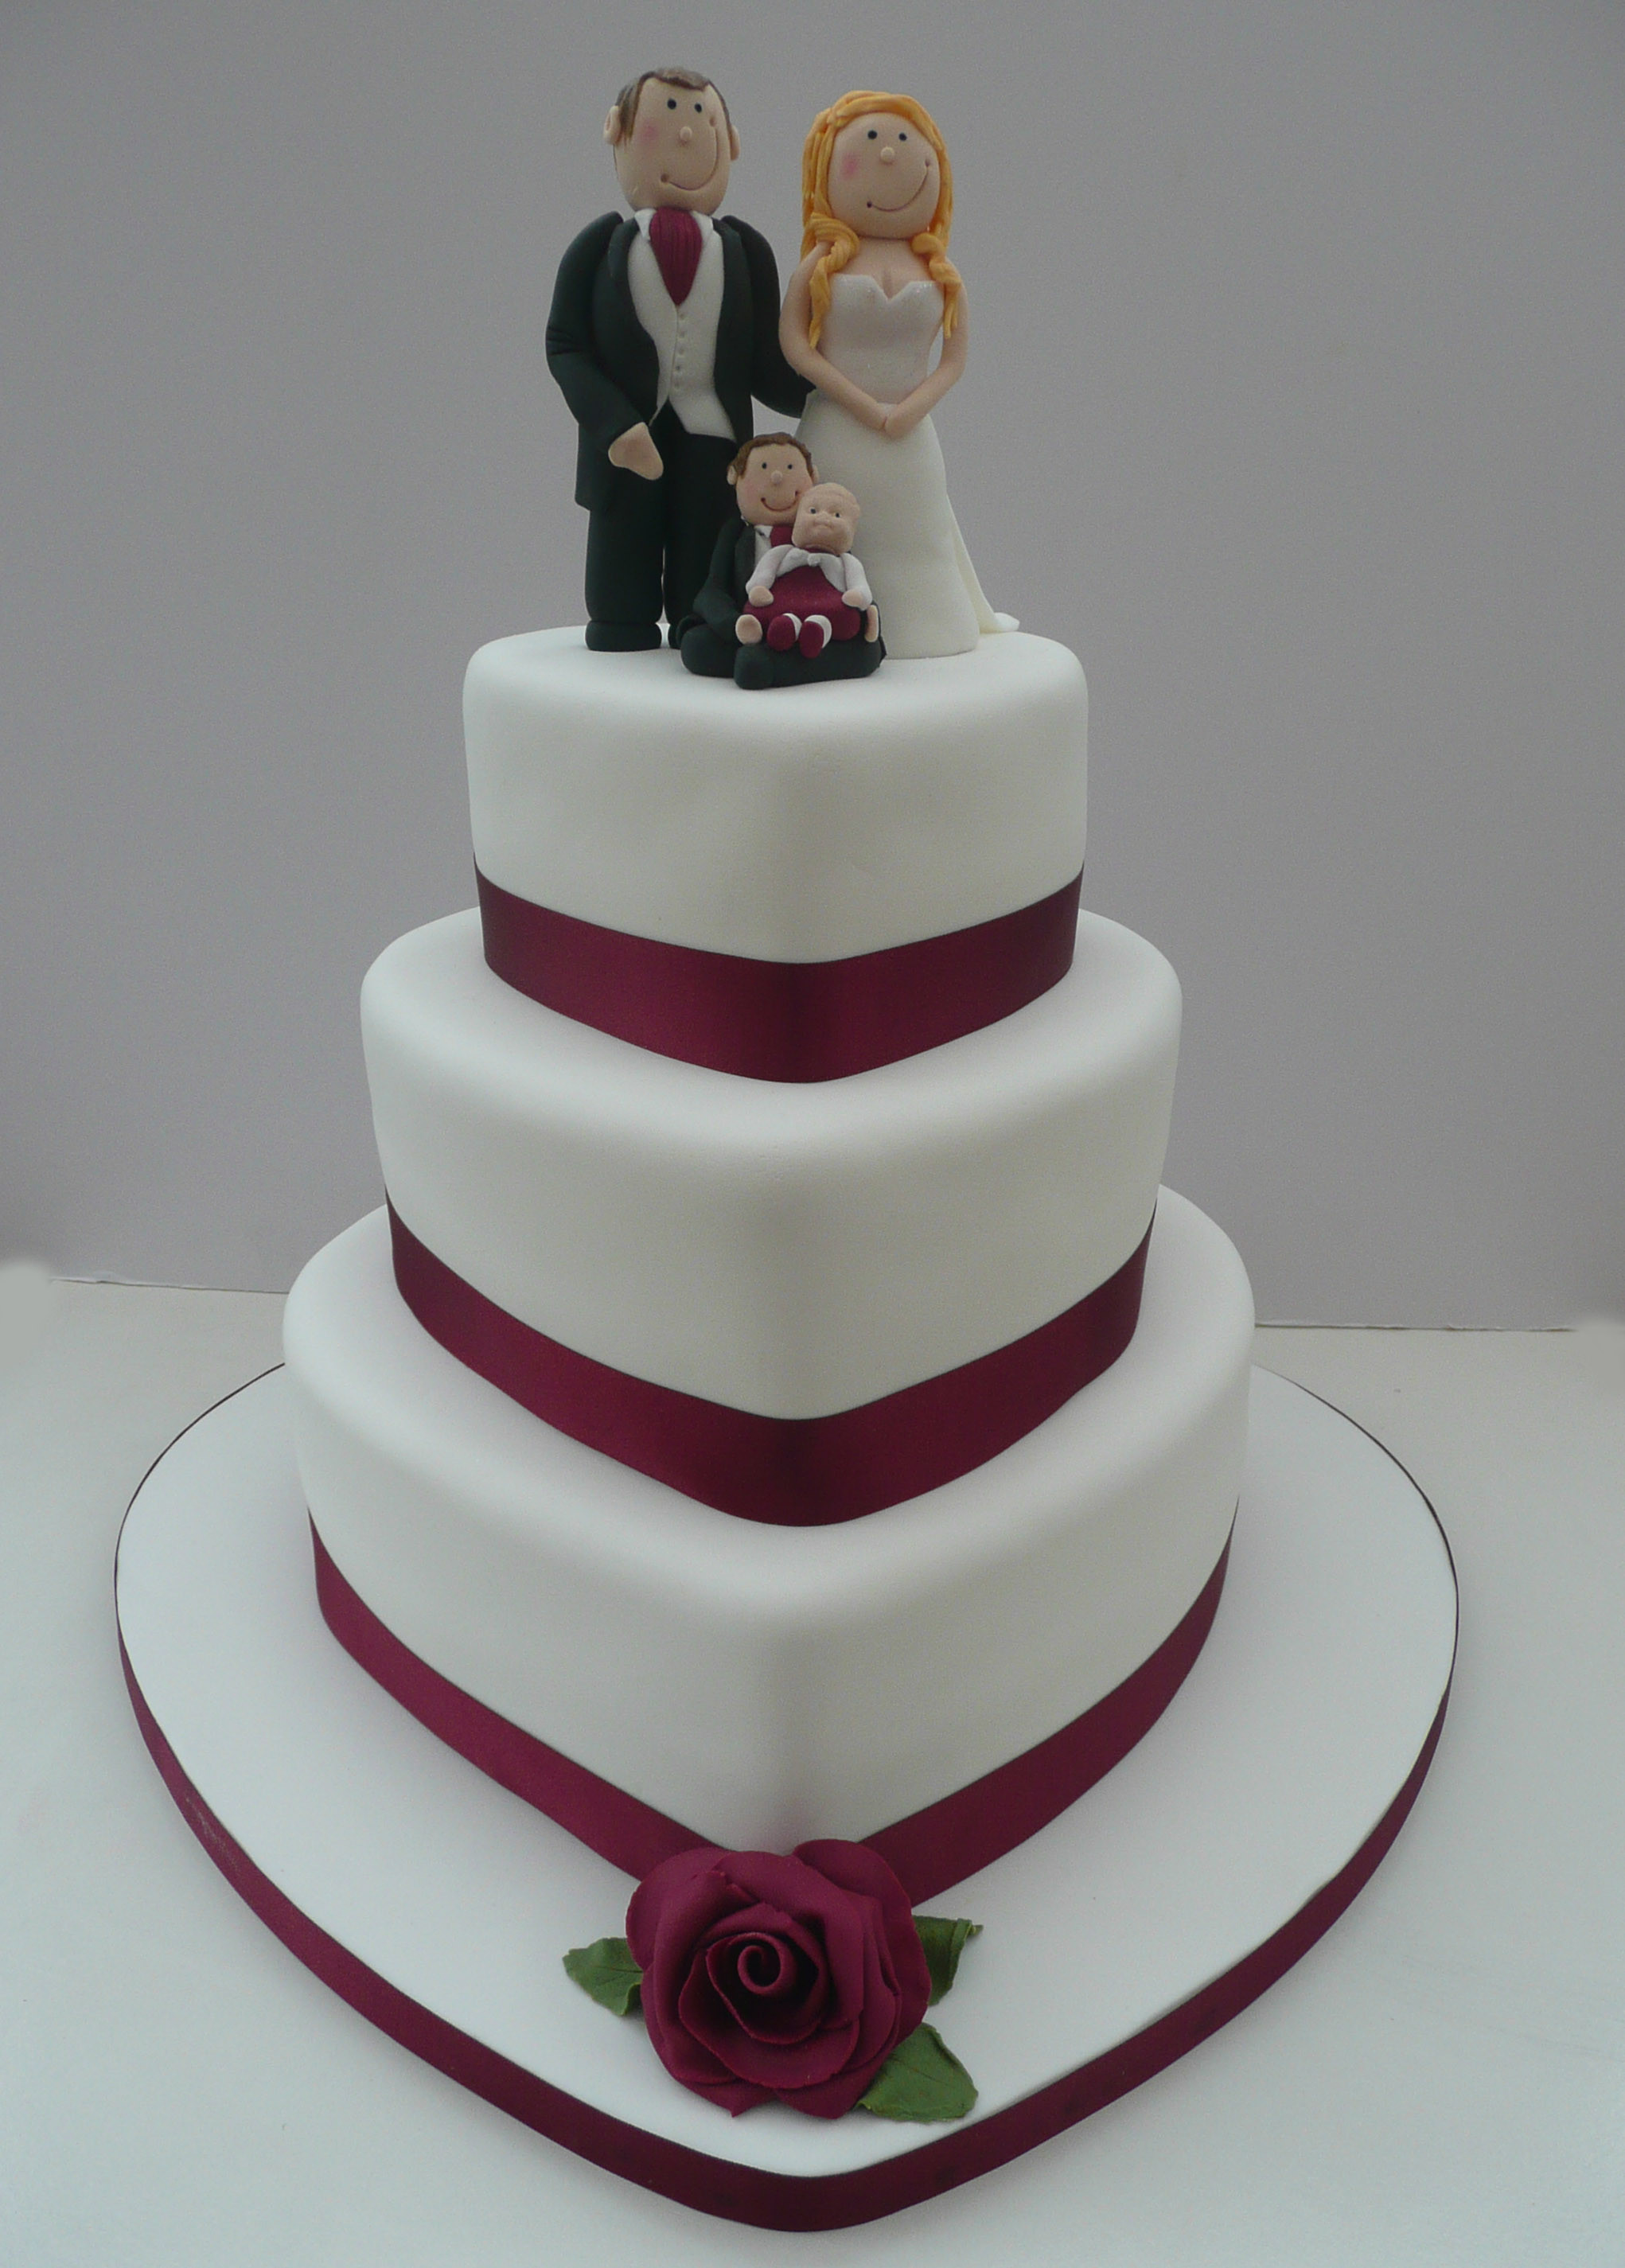 Wedding Cakes With Hearts  Wedding Cakes – inspiring designs